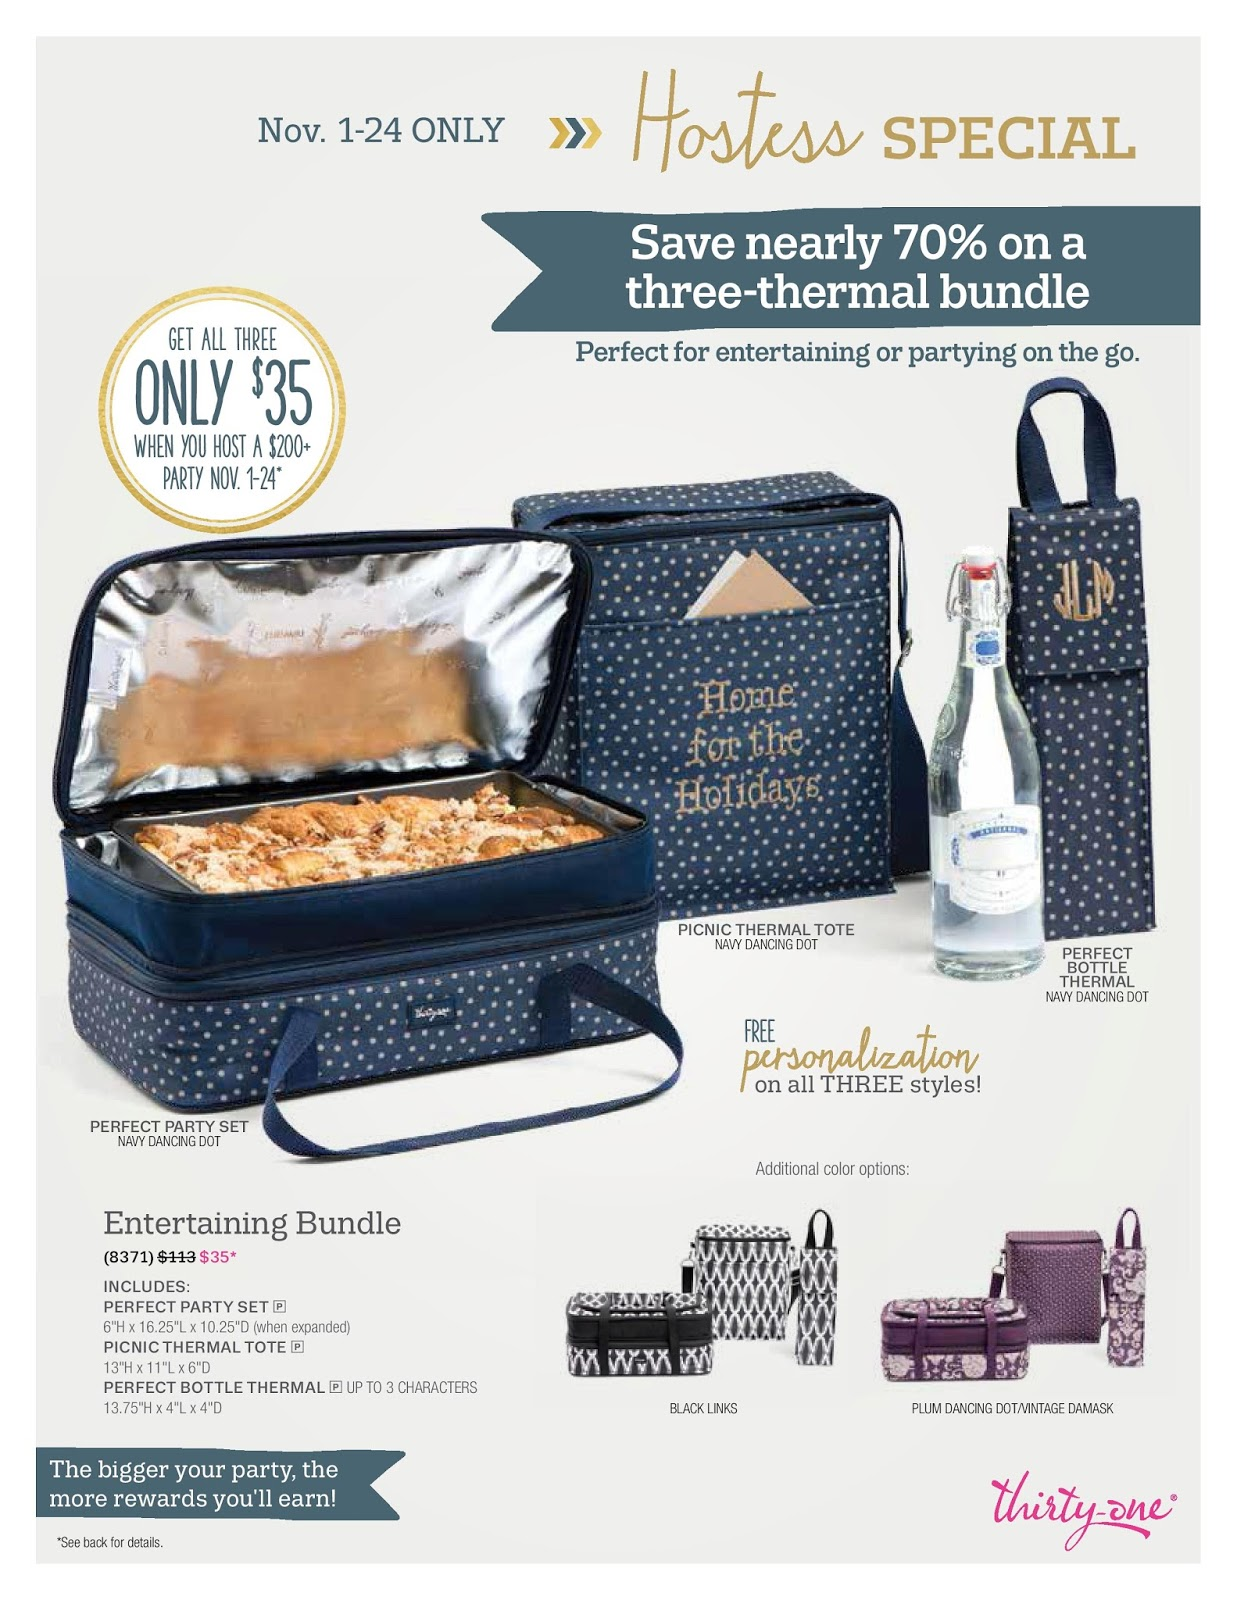 Thirty one november customer special 2014 - November Specials